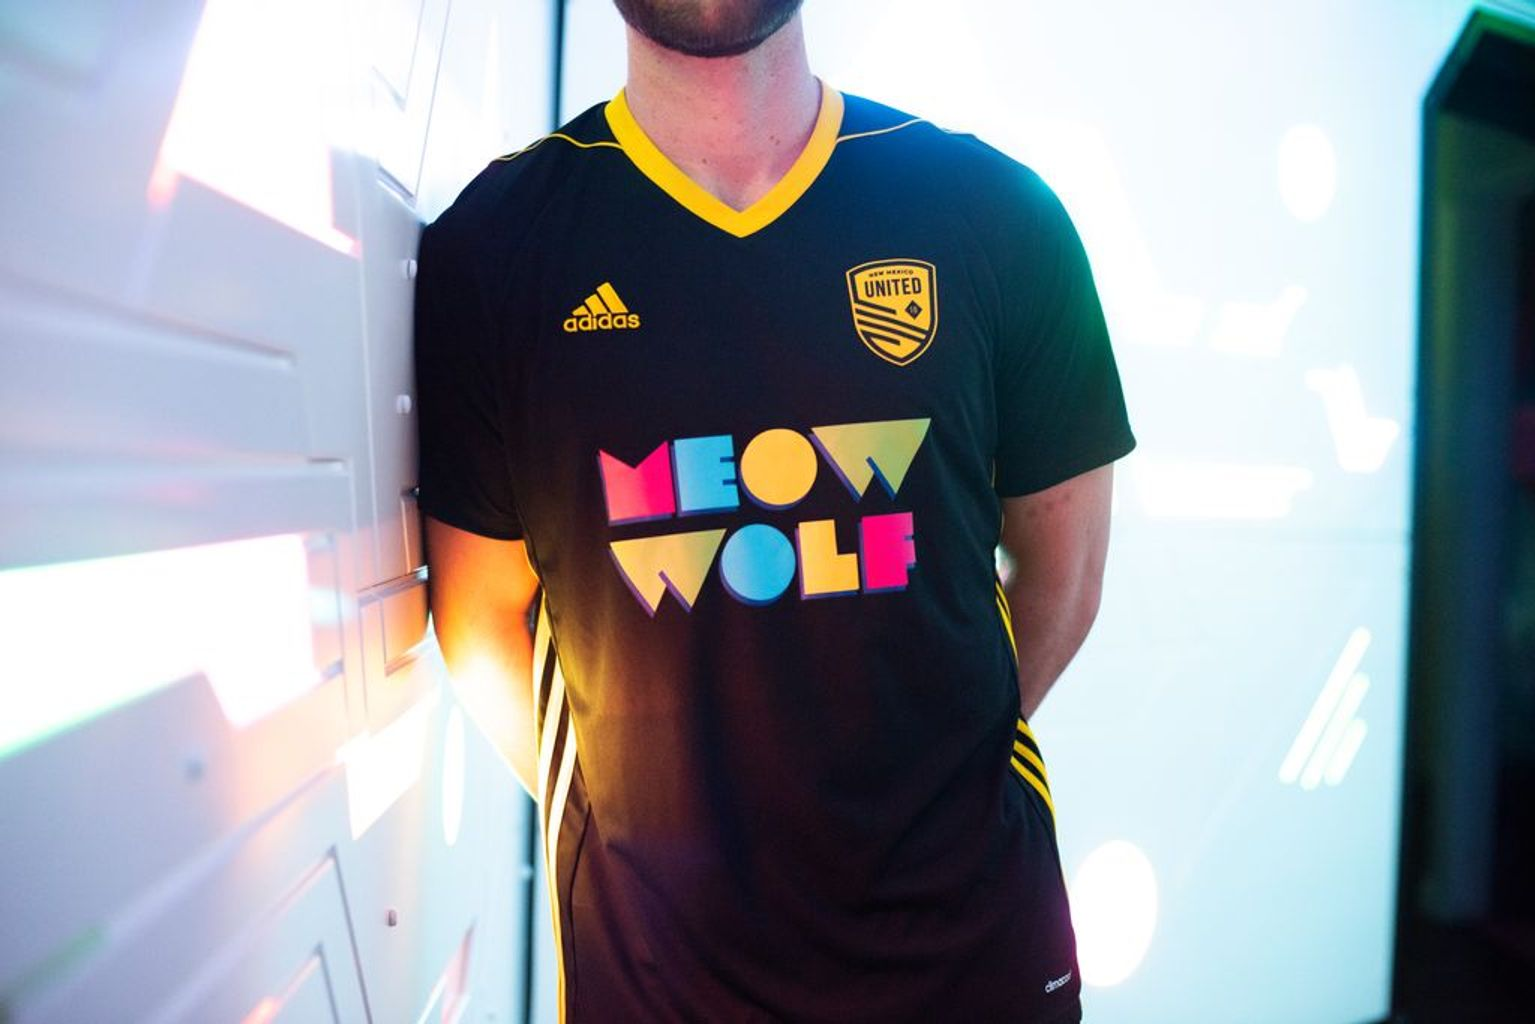 2019 Meow Wolf Unisex Home Jersey